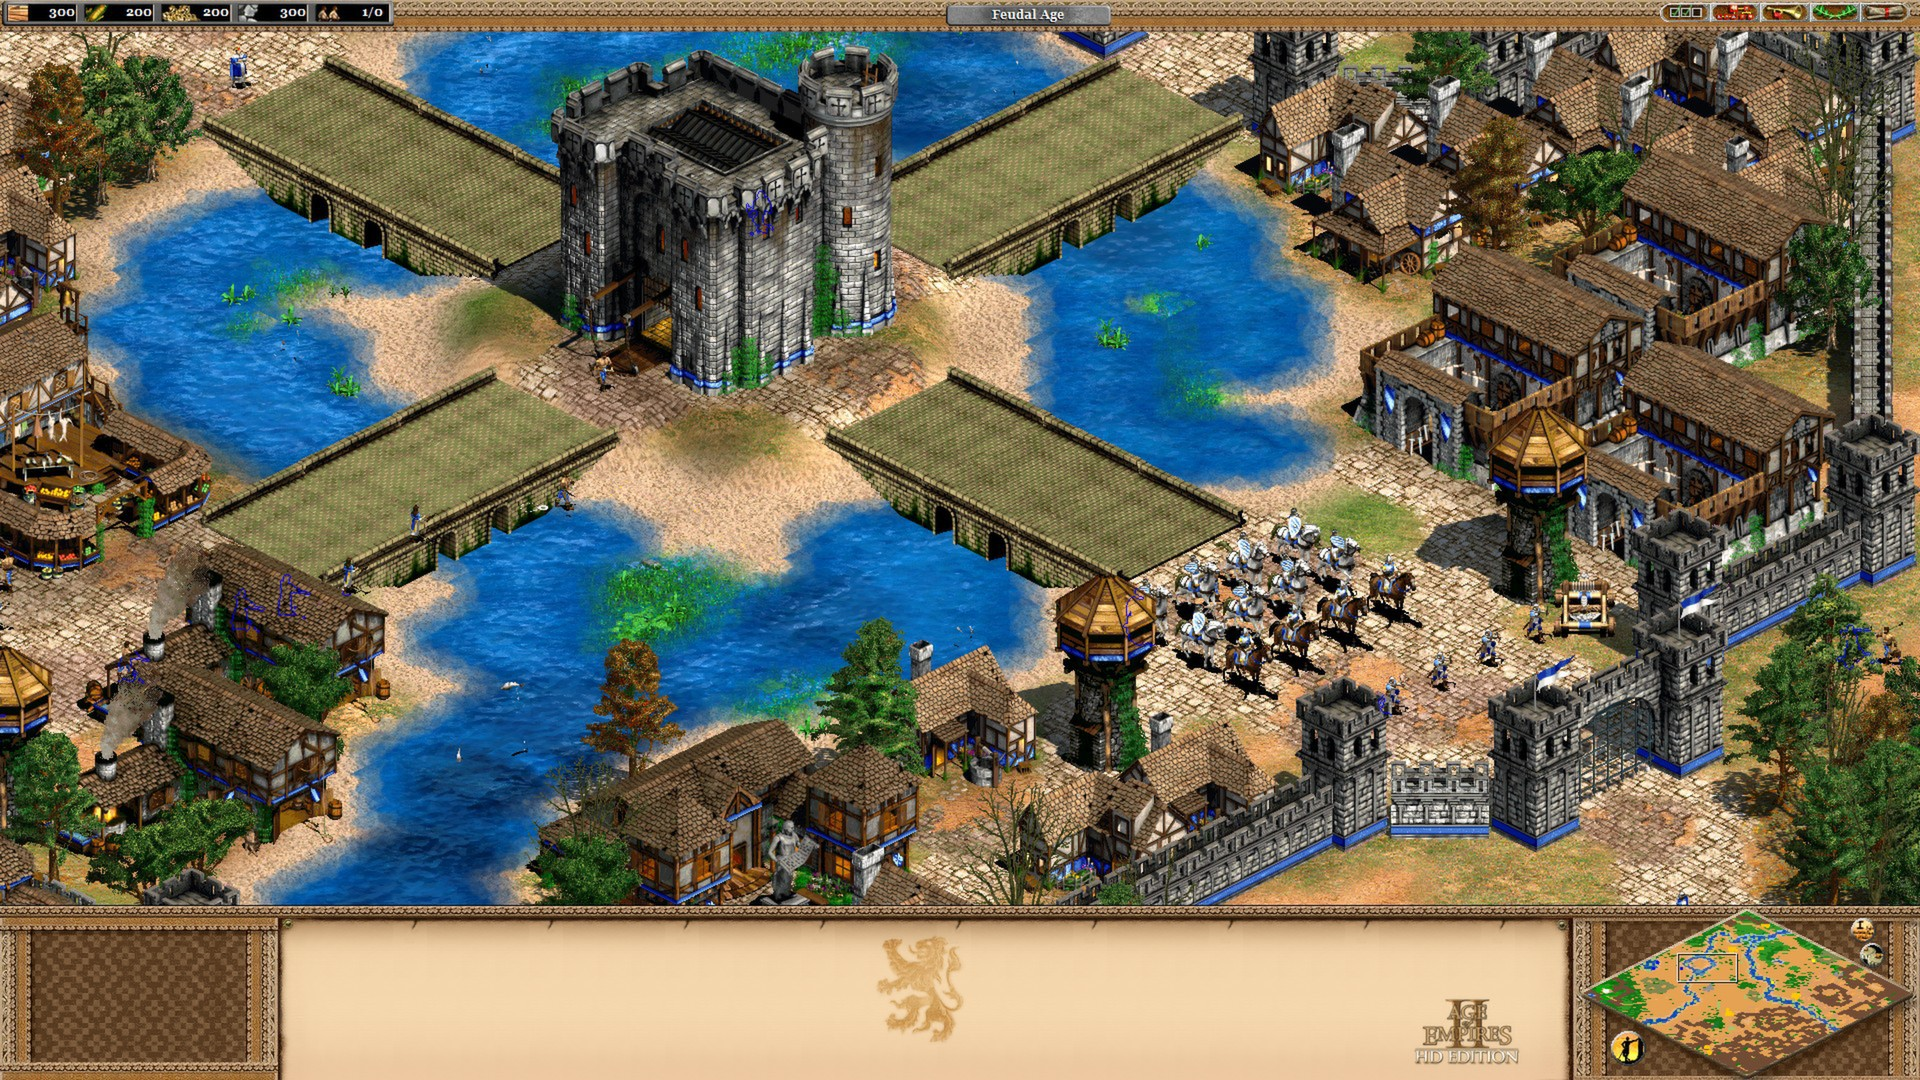 age of empires ii hd on steam